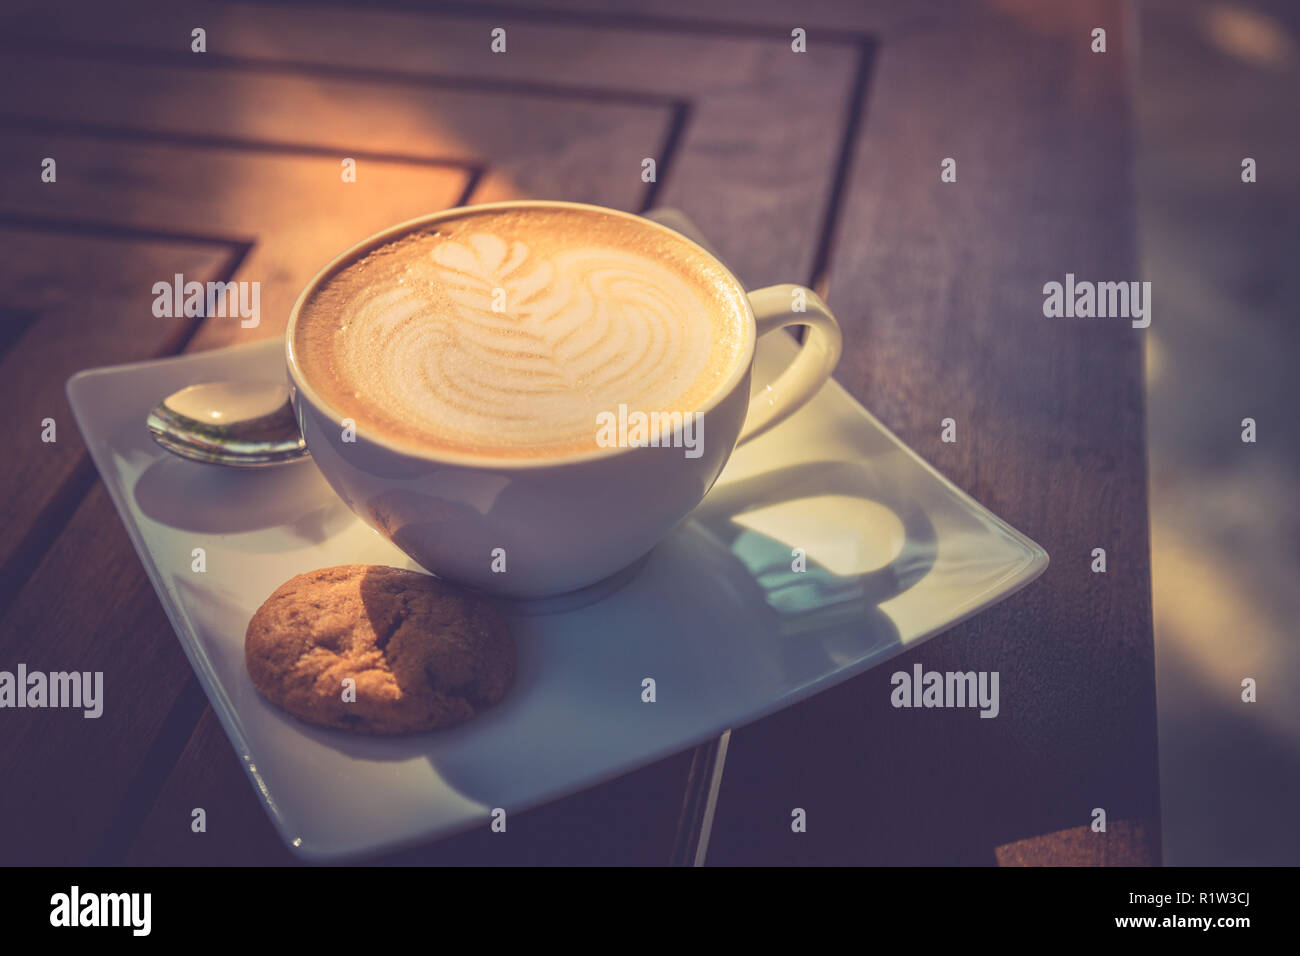 Beautiful morning wooden table top with coffee, latte art and cookie. Start the day, good mood concept. - Stock Image